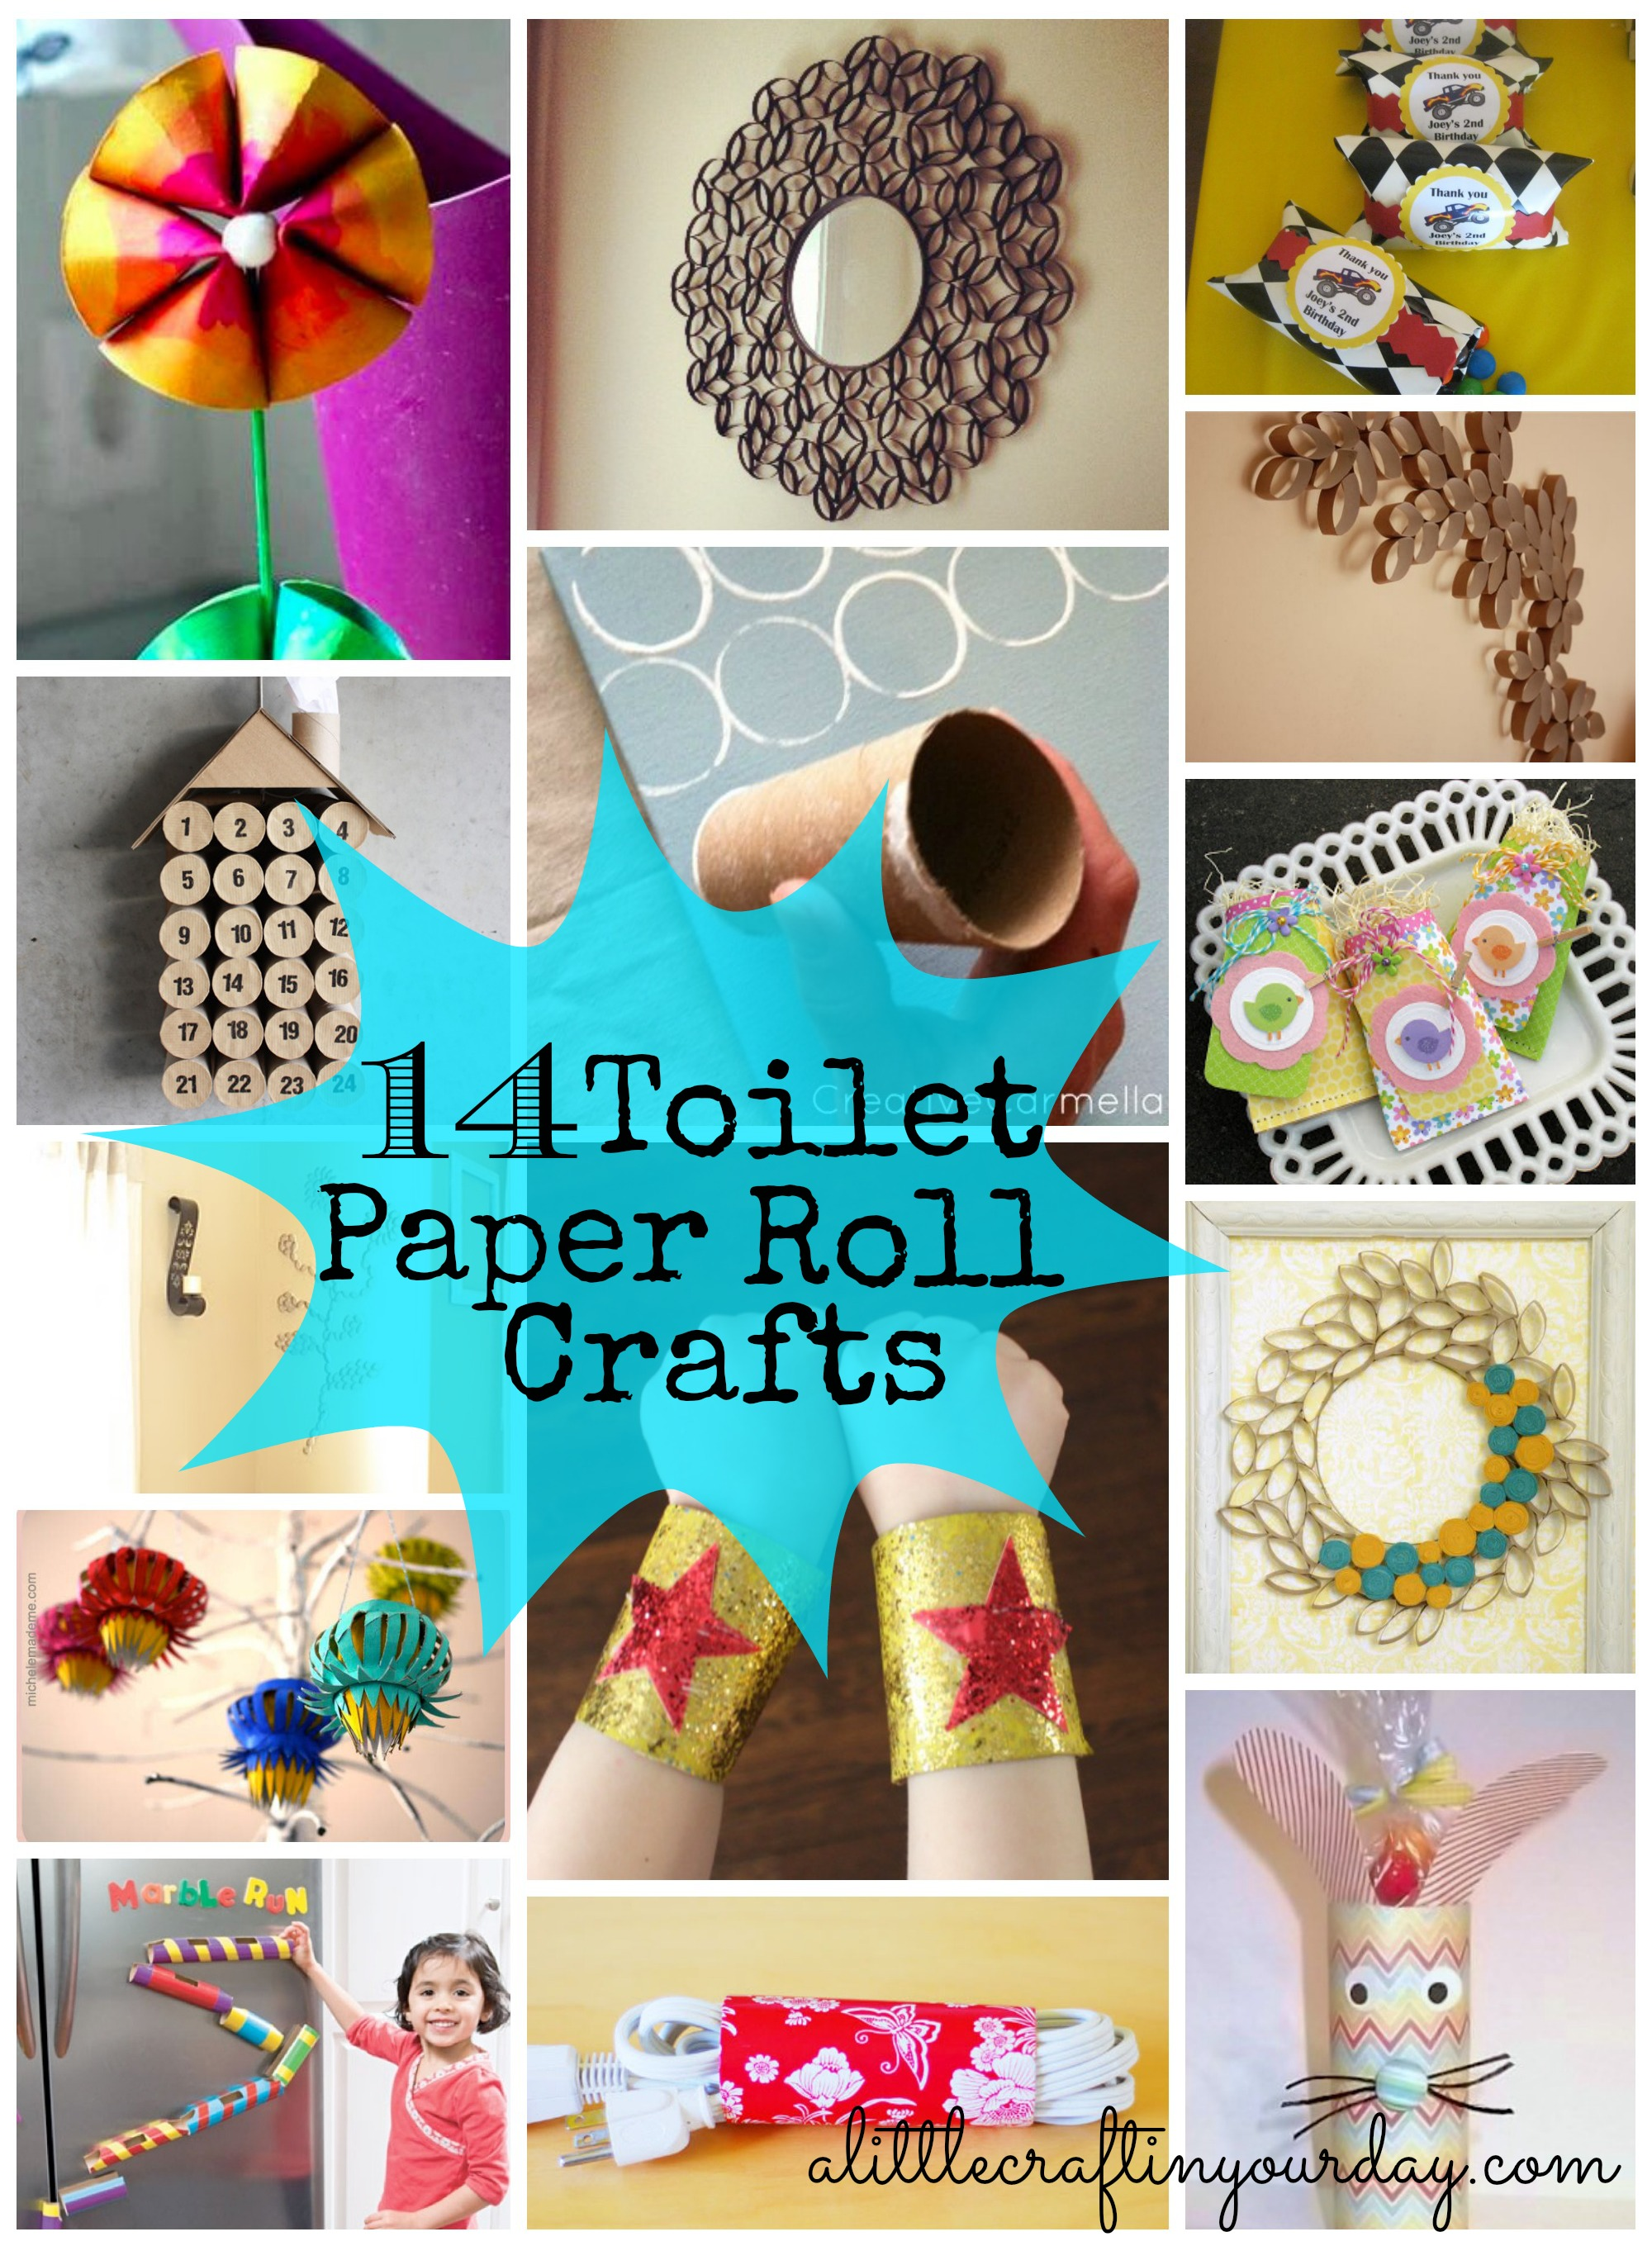 14 toilet paper roll crafts a little craft in your day 731 14 toilet paper roll crafts jeuxipadfo Images